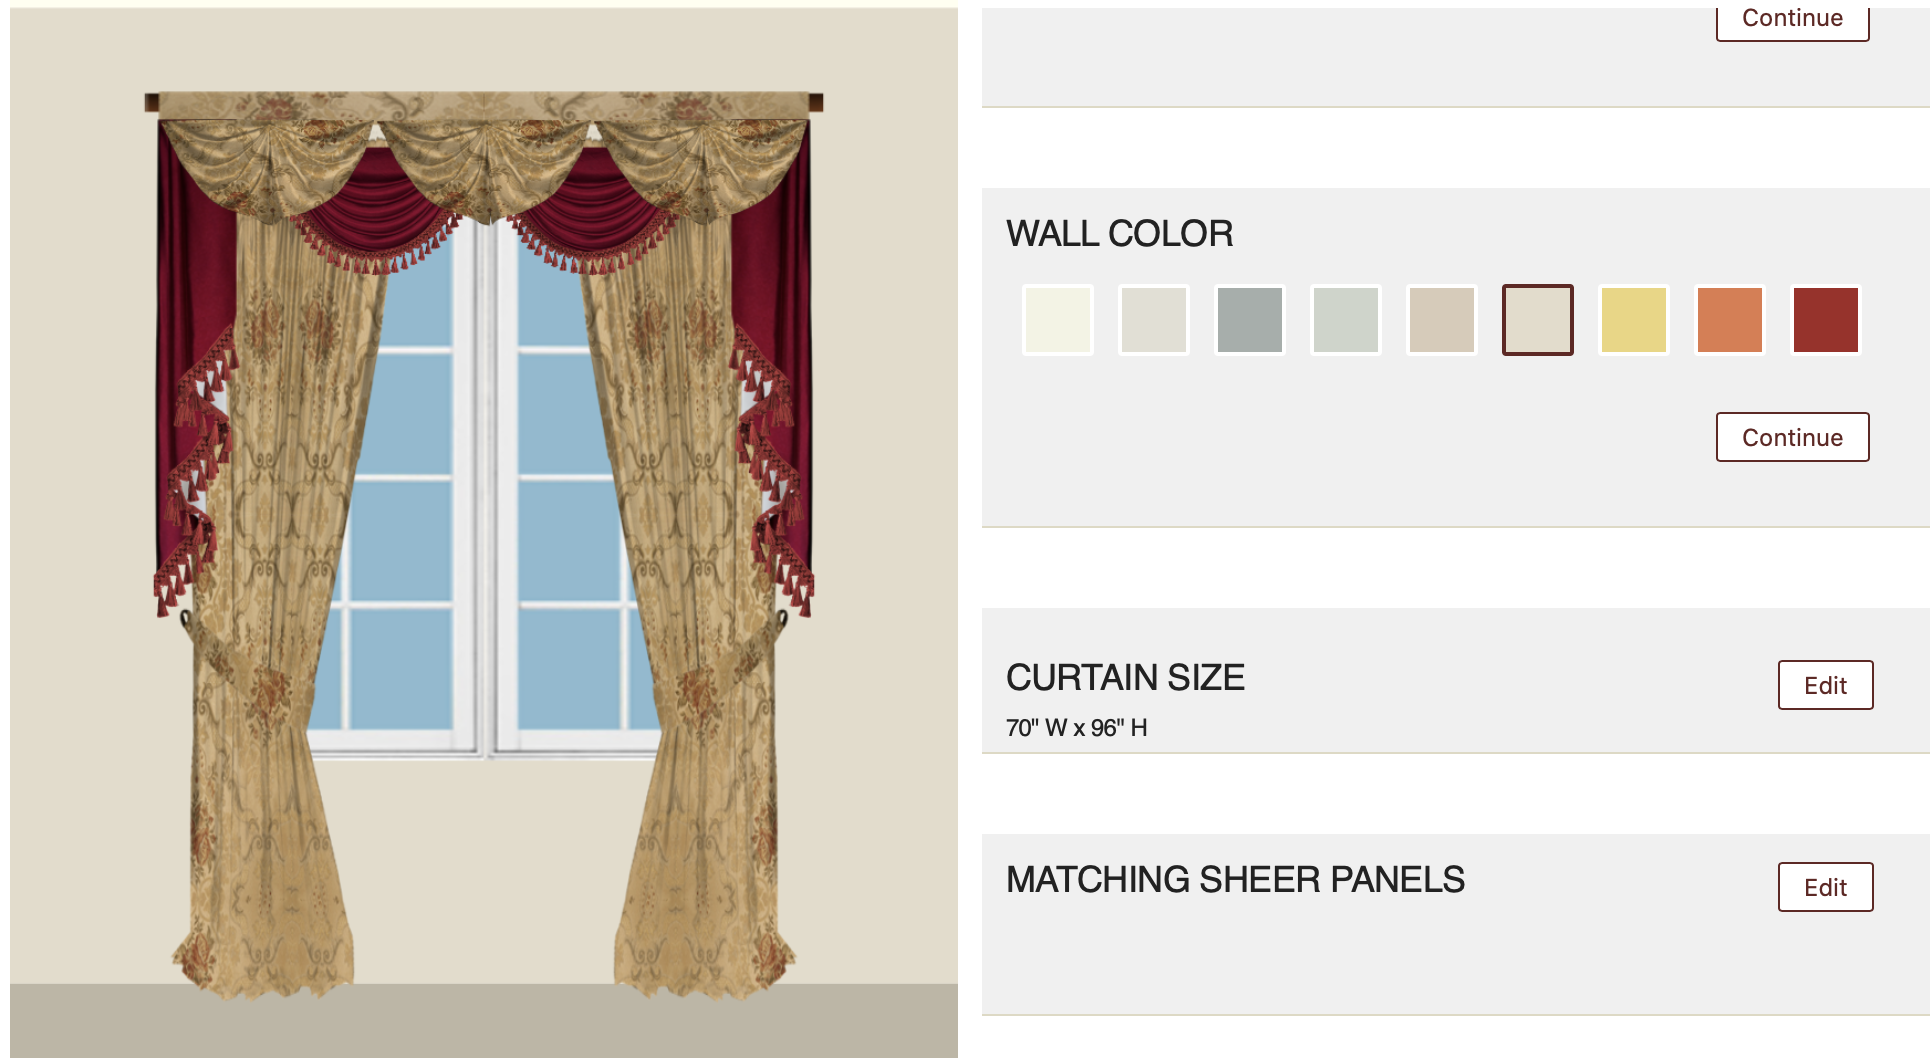 Customization-Wall Color